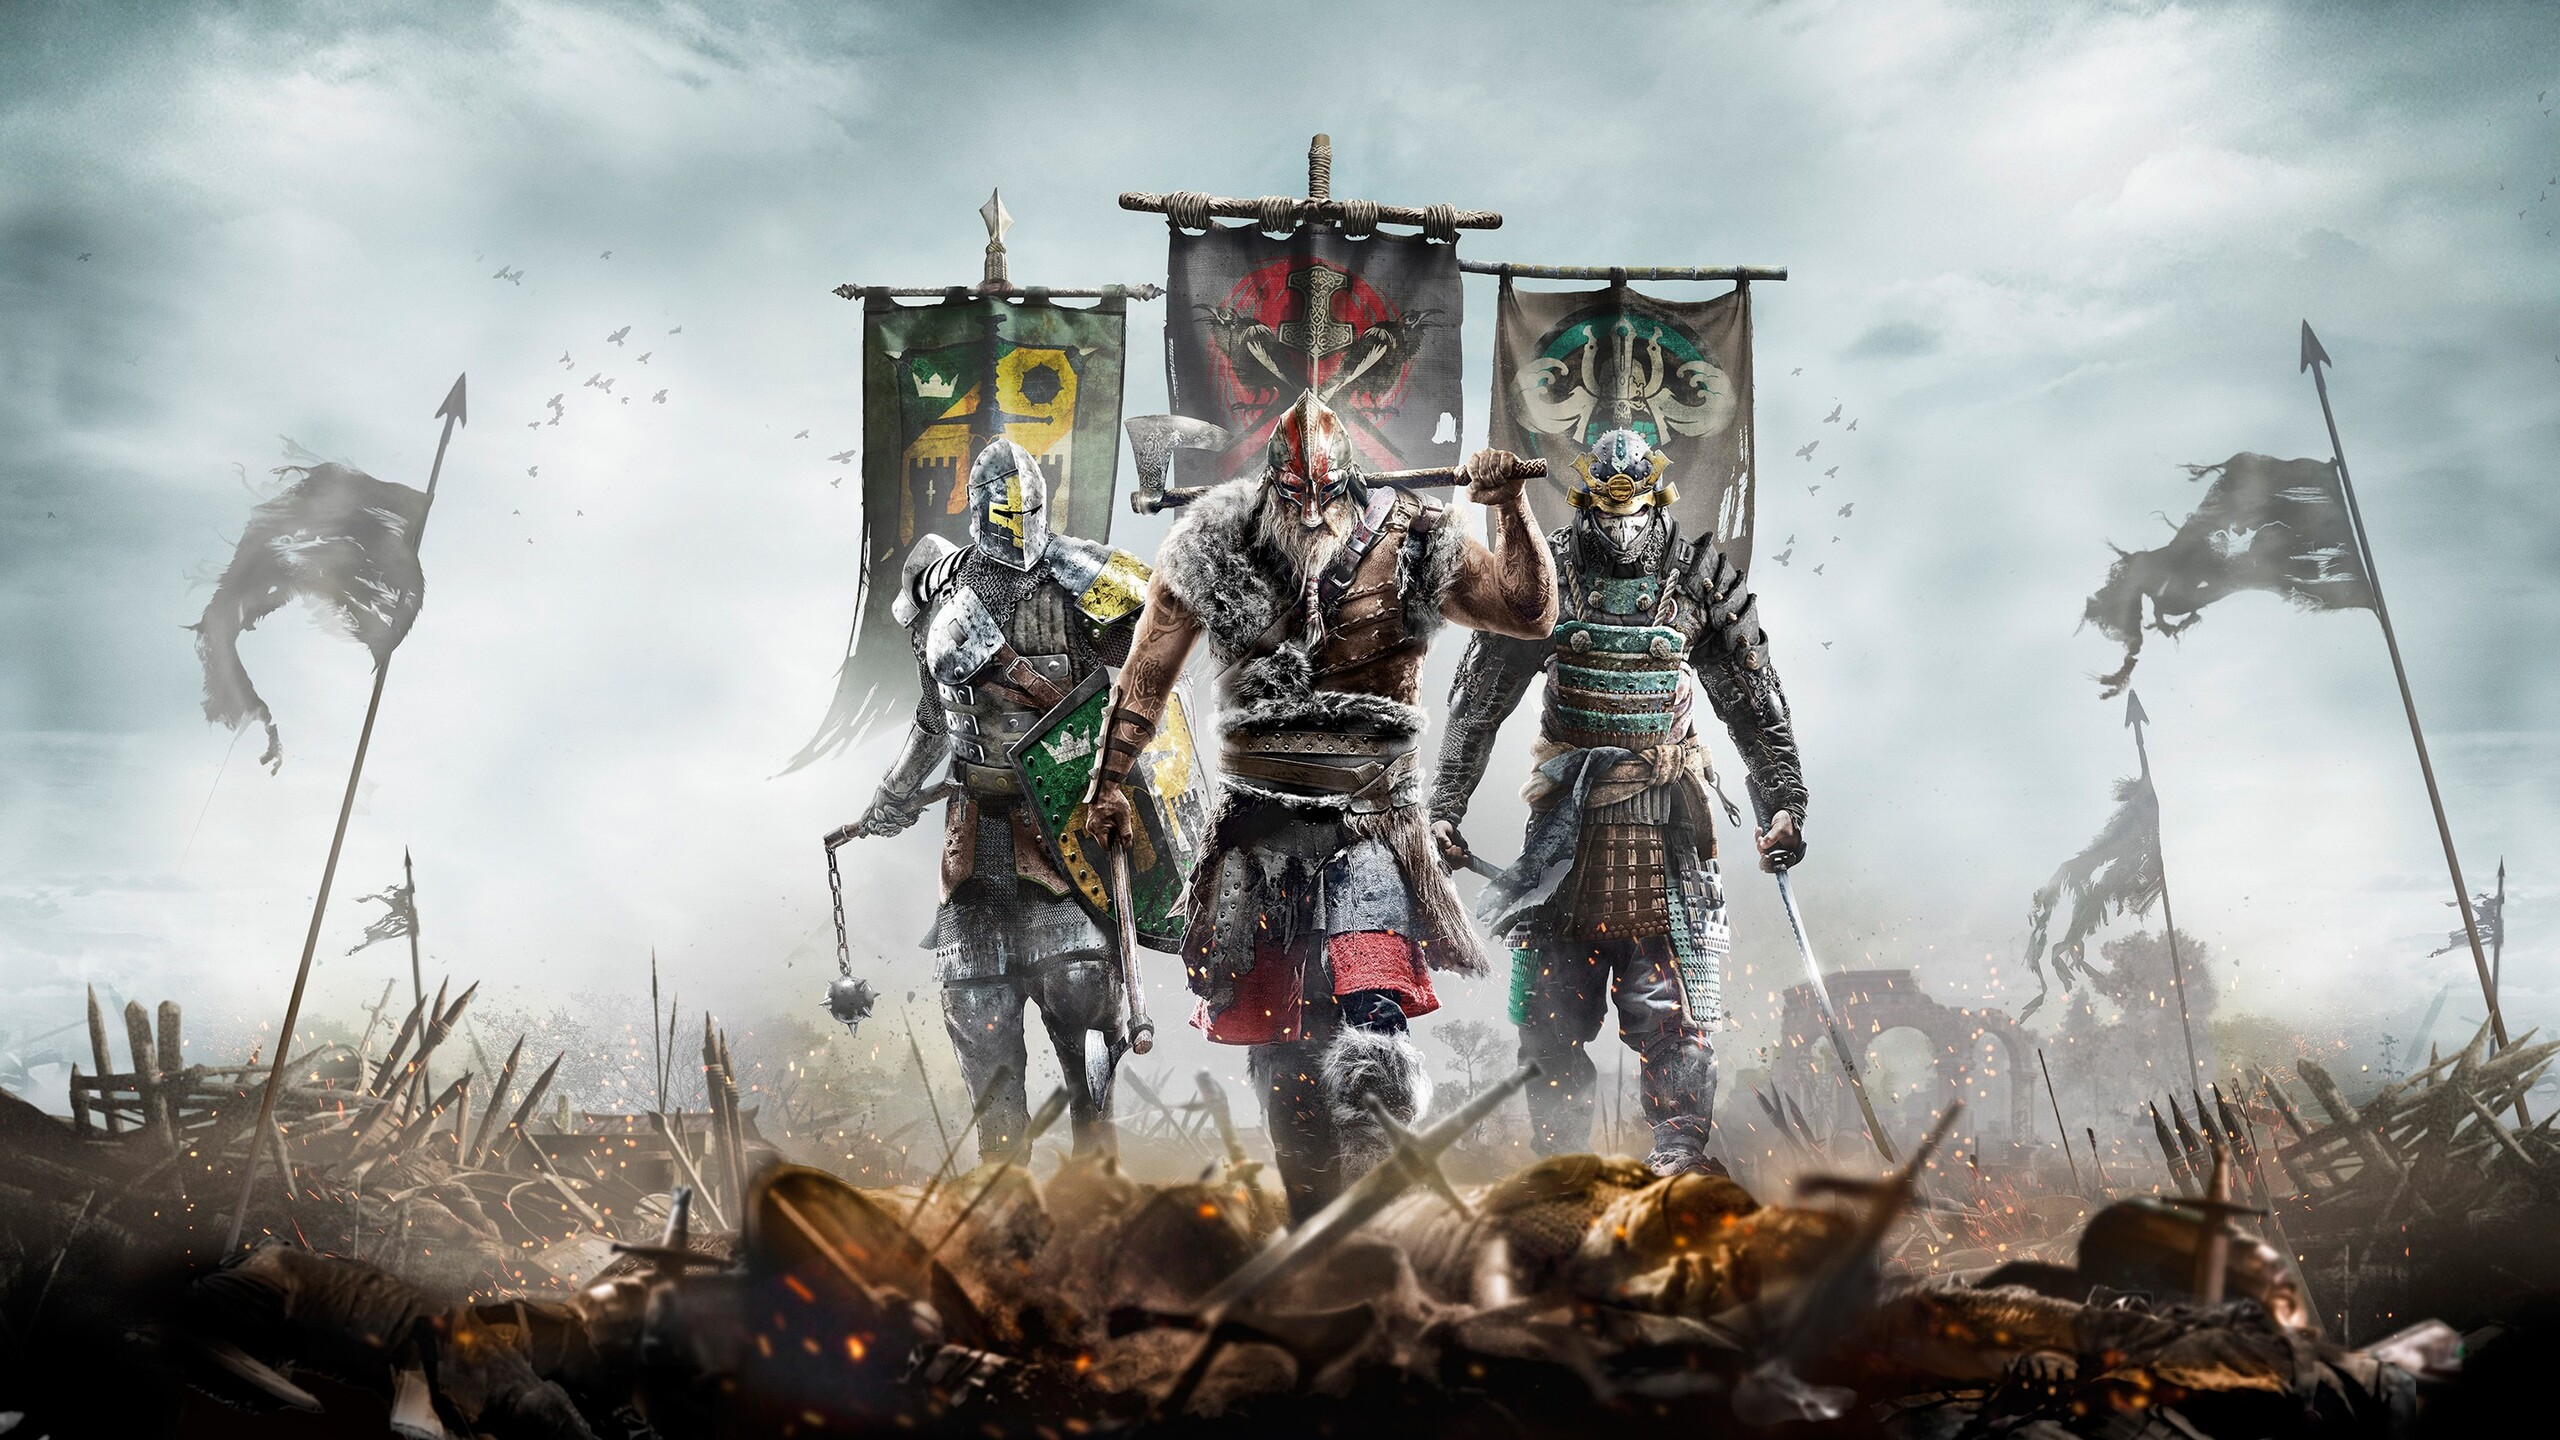 4k Wallpapers For Pc Cars 2560x1440 For Honor Game 1440p Resolution Hd 4k Wallpapers